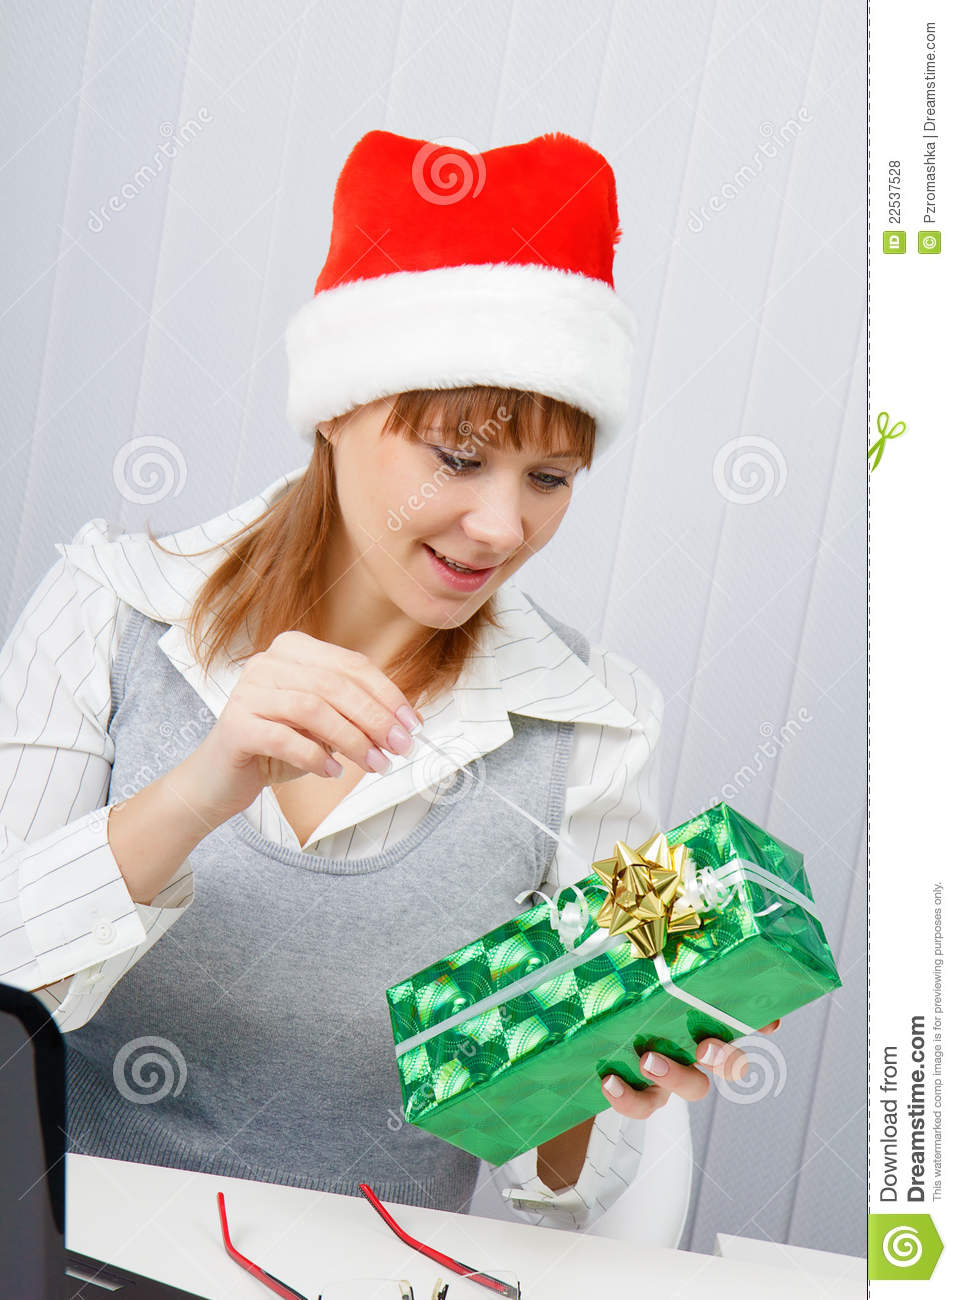 Girl In The Office With A New Year Gift Royalty Free Stock ...